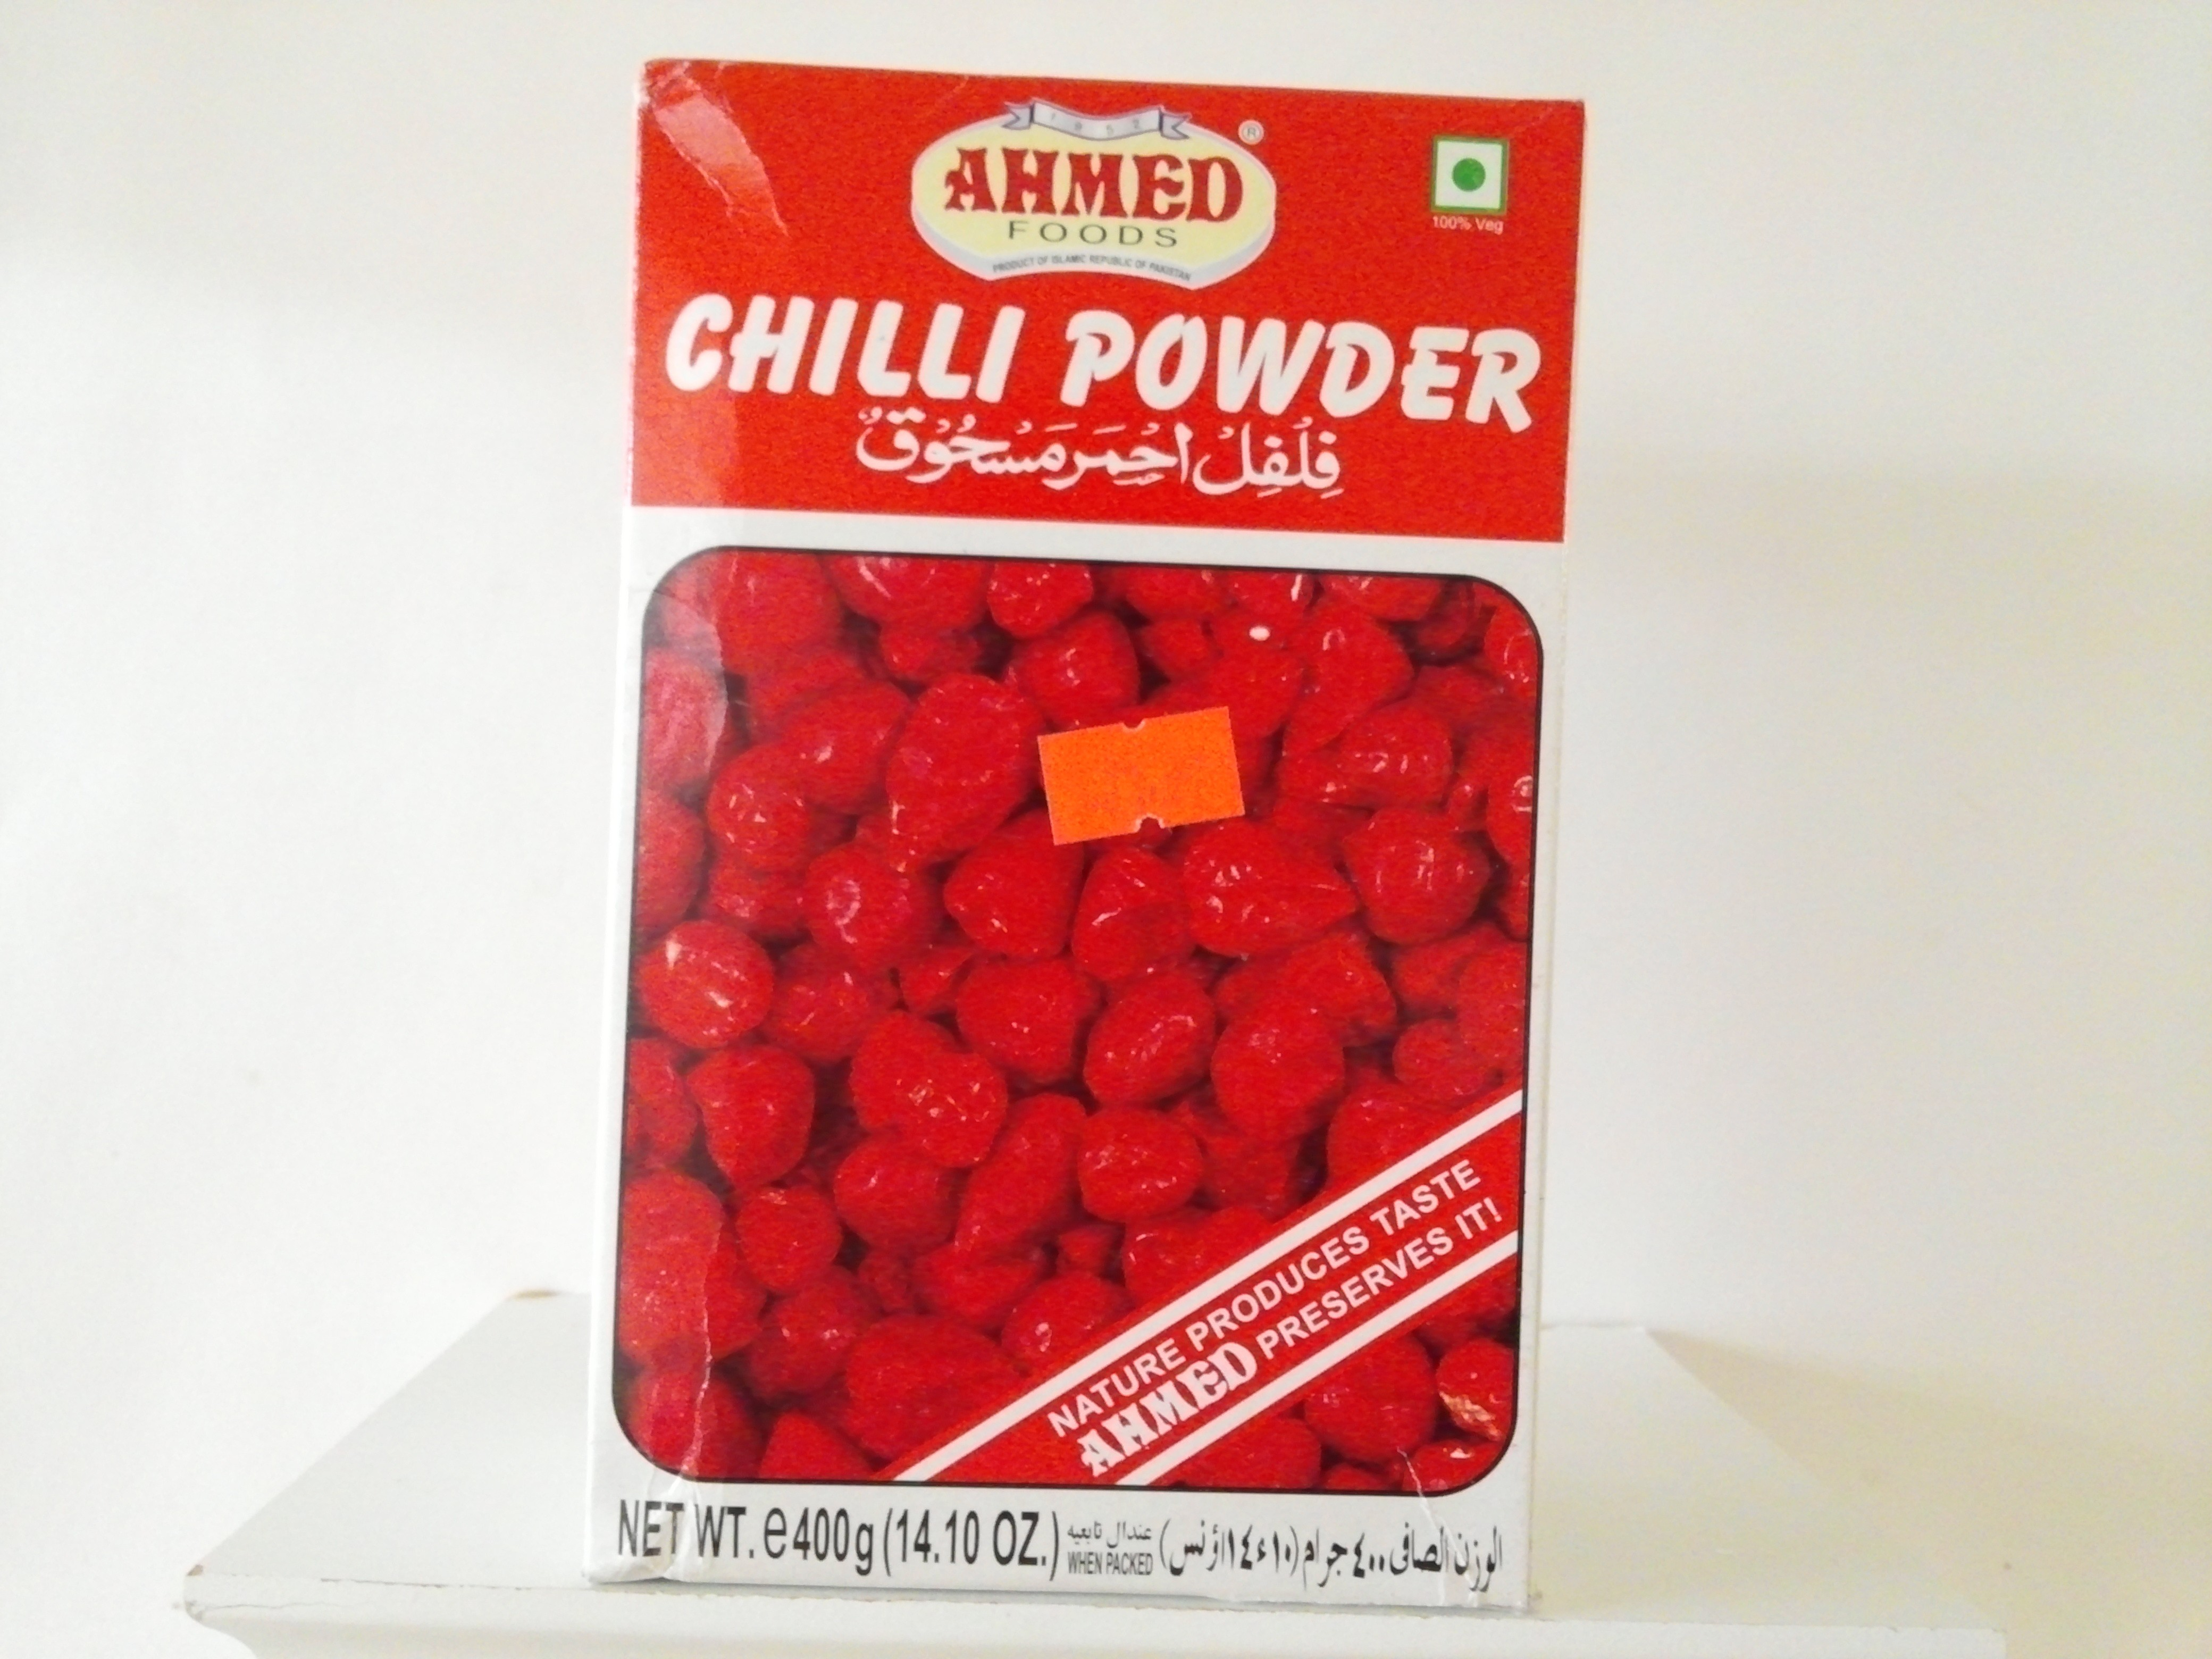 Ahmed Chilli Powder 14 oz